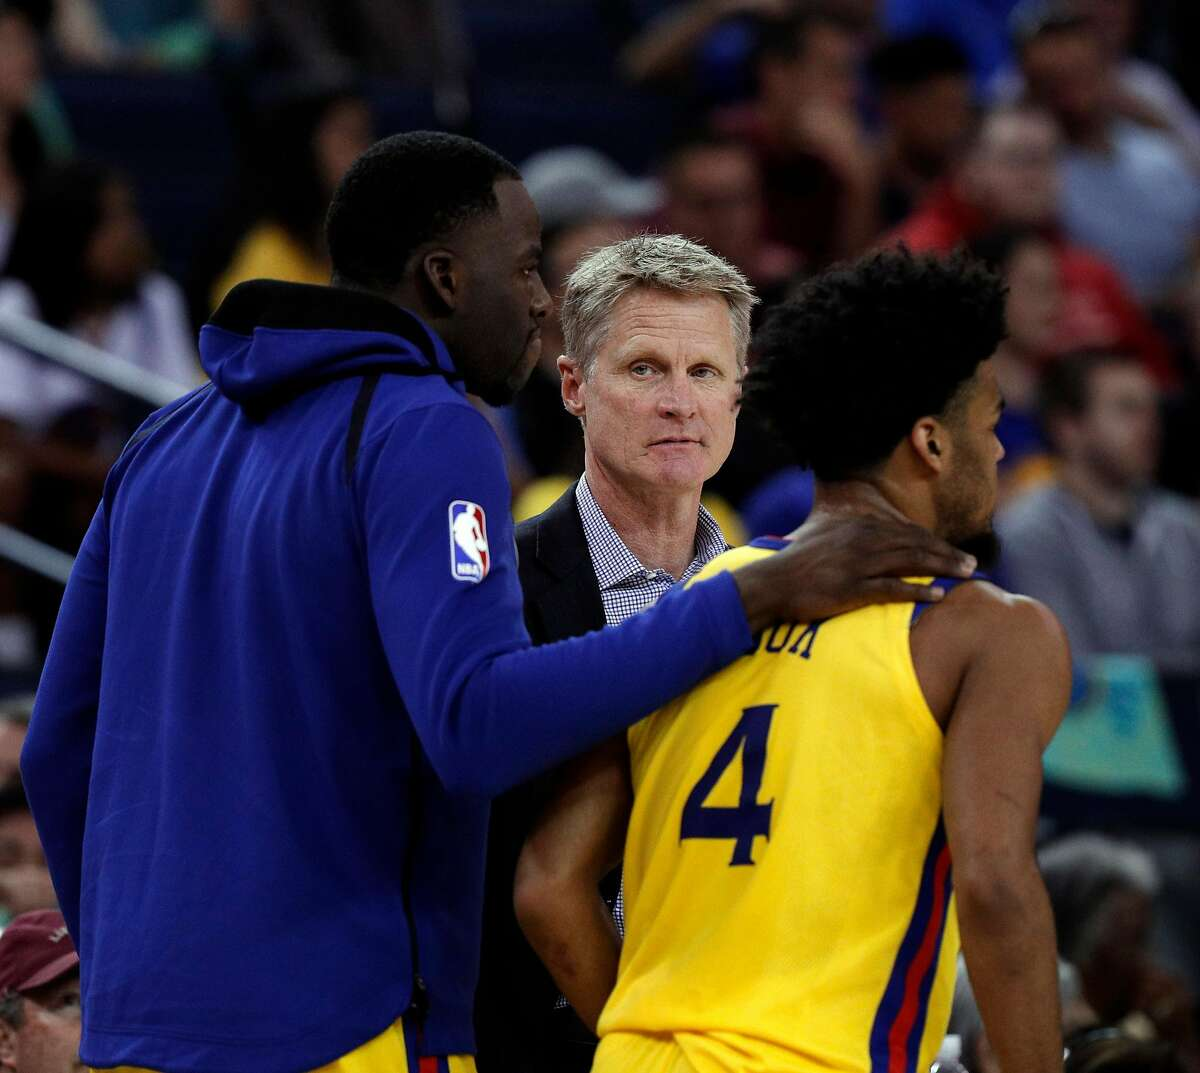 Warriors head coach Steve Kerr watches as Draymond Green helps Quinn Cook with some advice during the Golden State Warriors game against the Milwaukee Bucks at Oracle Arena in Oakland, Calif., on Thursday, March 29, 2018.